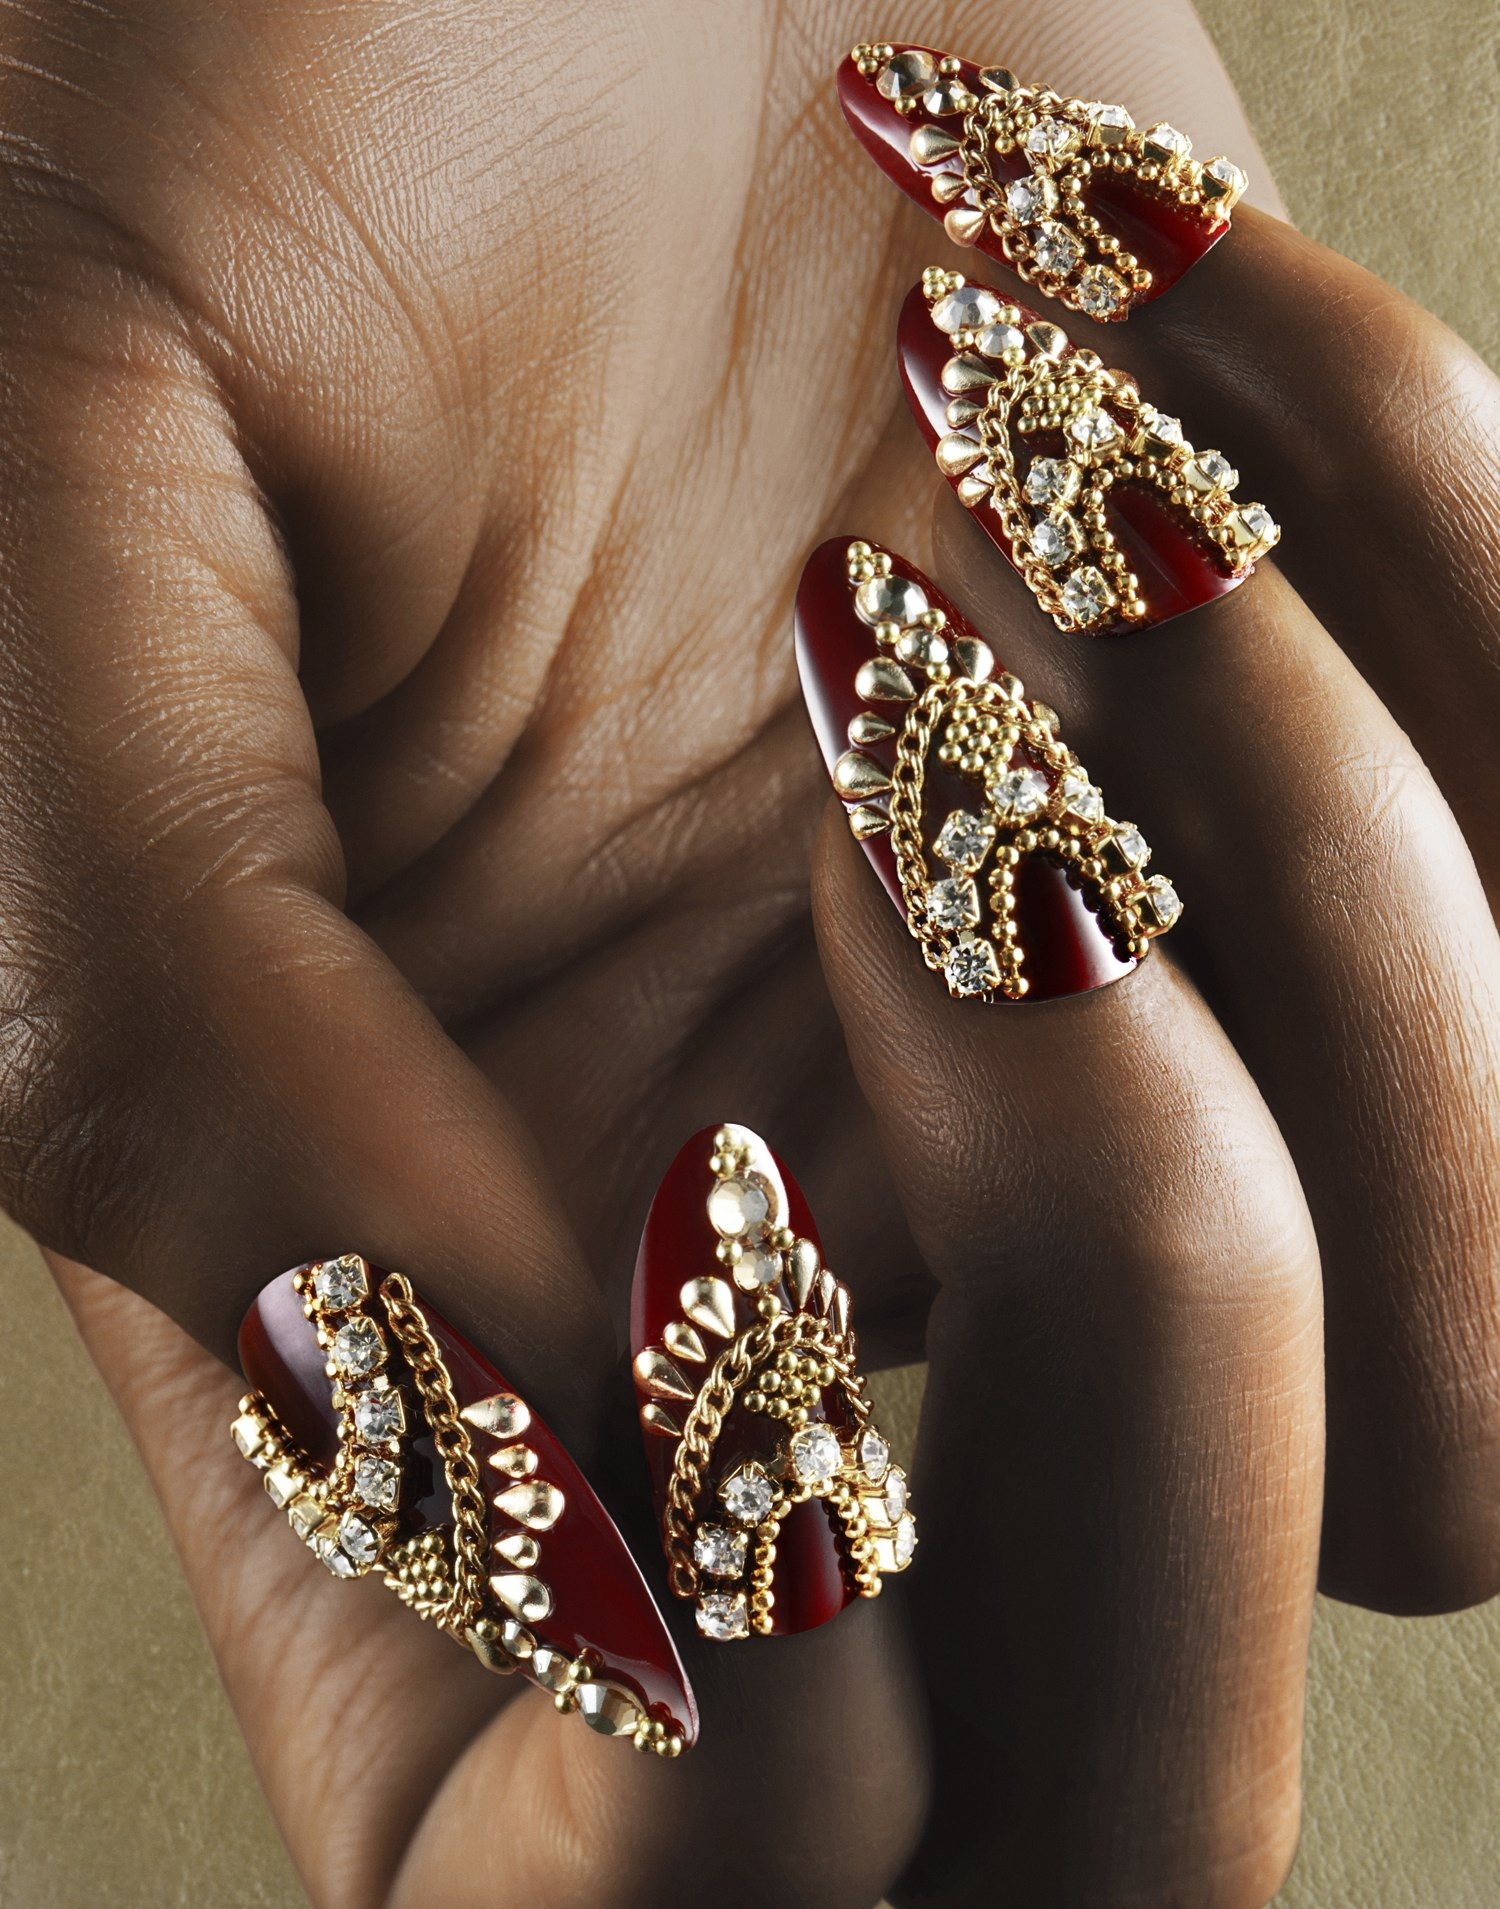 Nigel cox photographs nail art for essence magazine stockland nigel coxnail art 3 prinsesfo Image collections